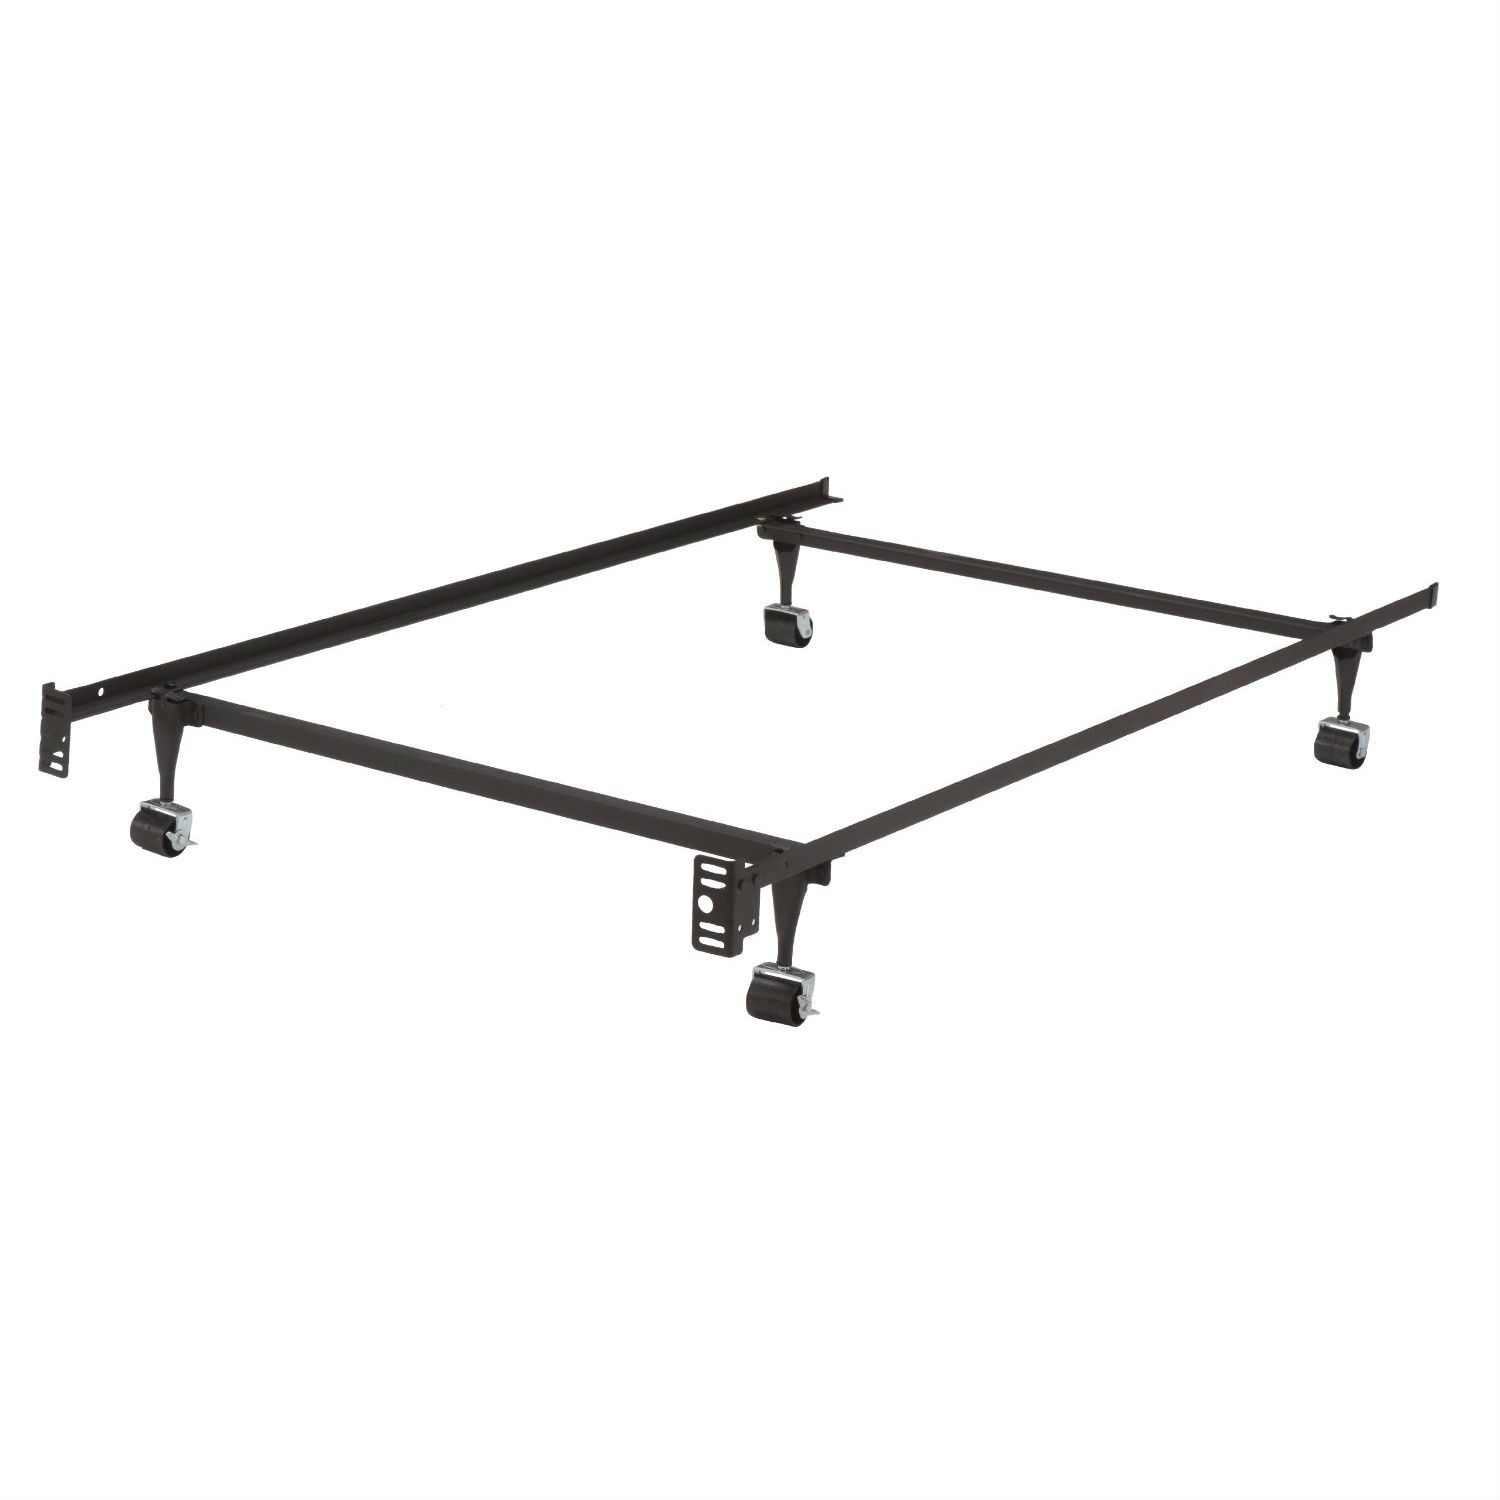 Locking Casters For Bed Frames